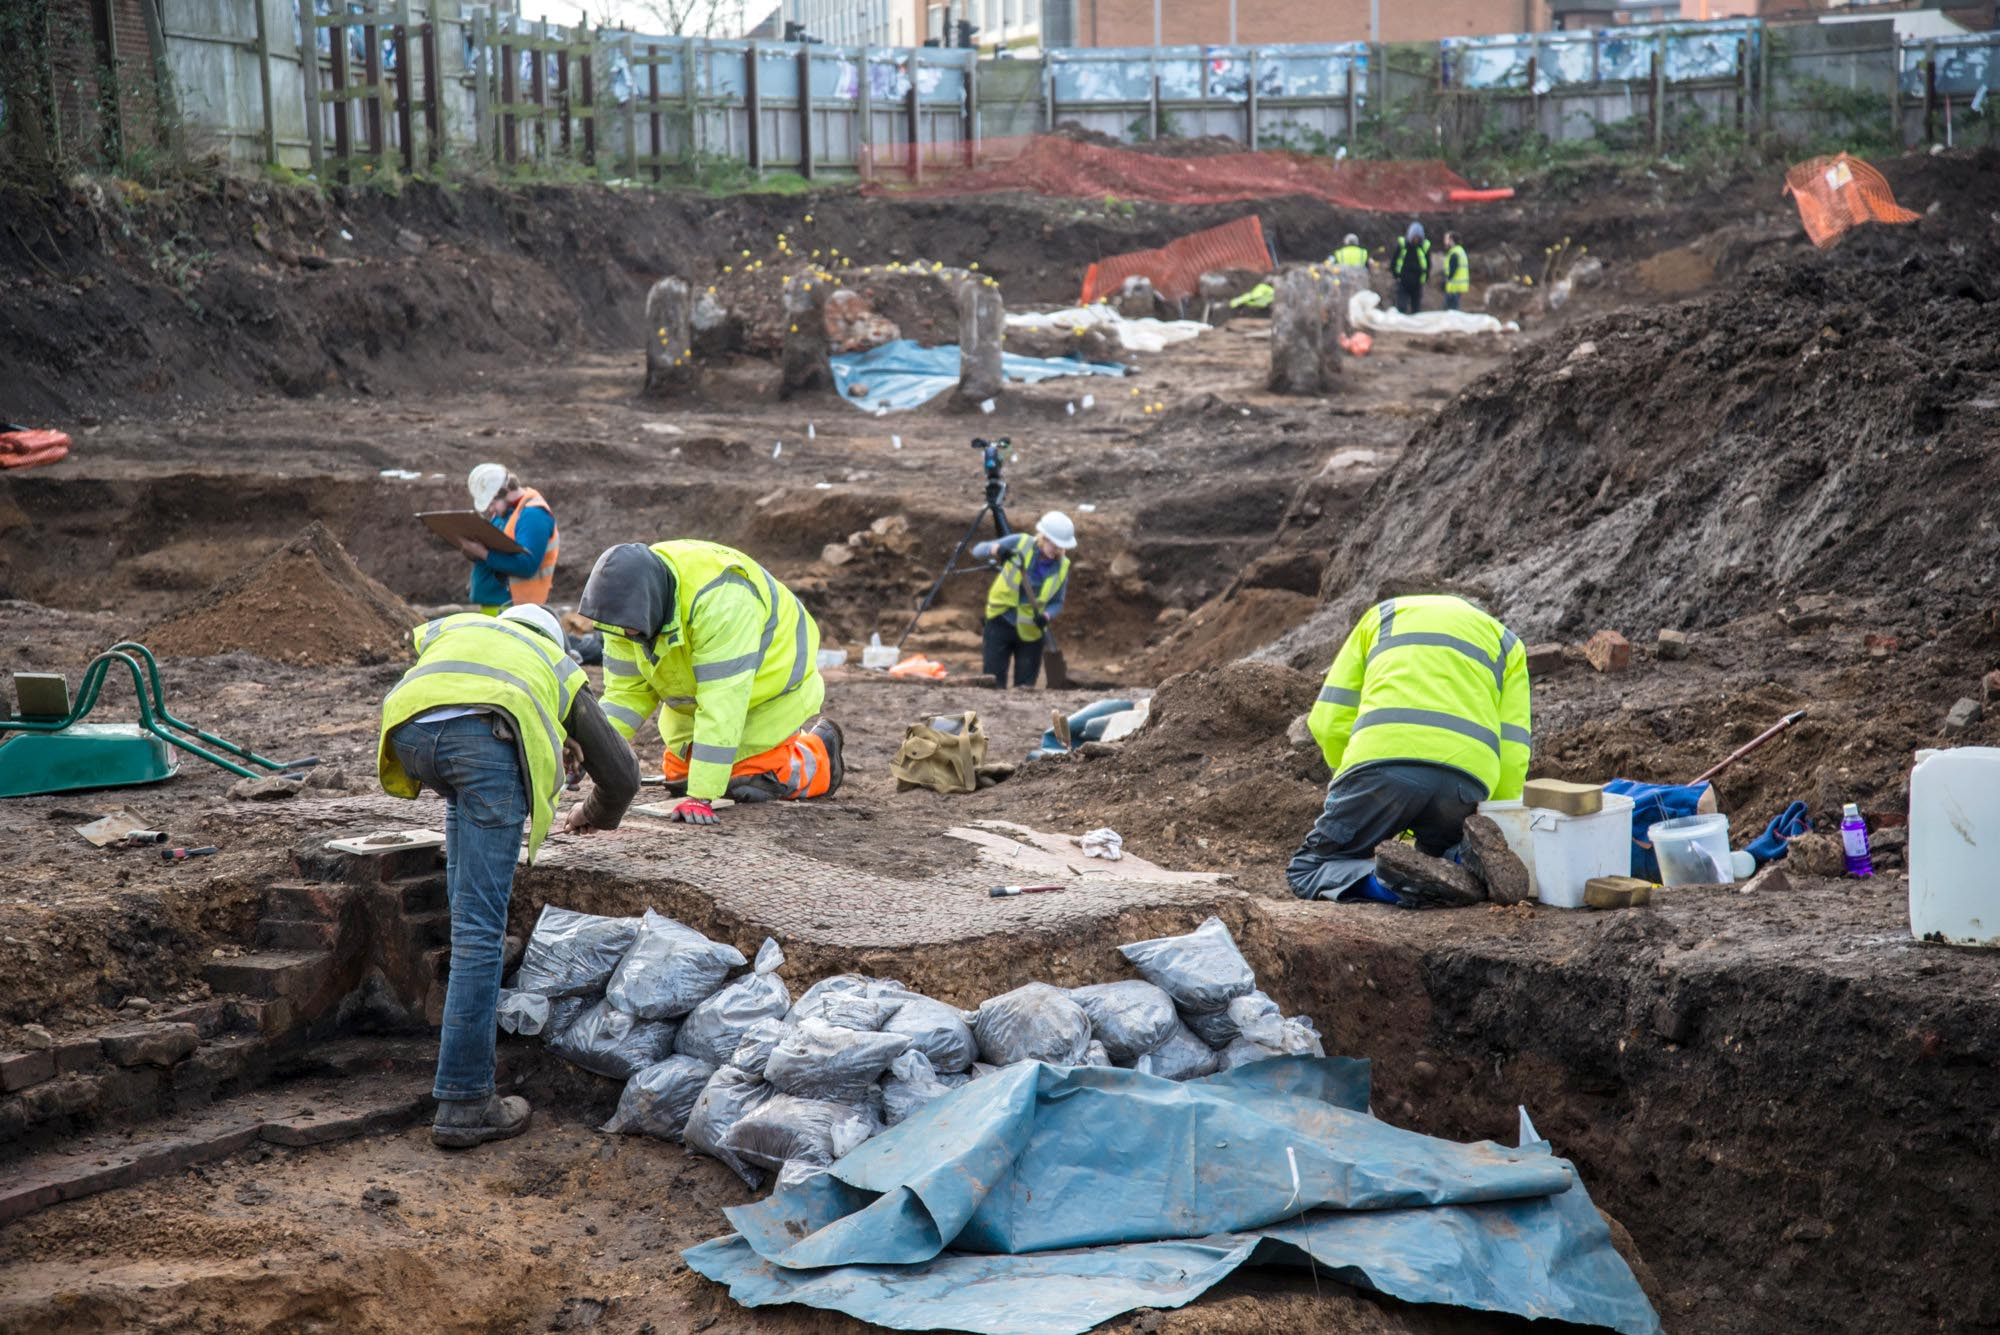 The archaeological dig seen here took place in 2017 was very close to the original Vine Street dig site -